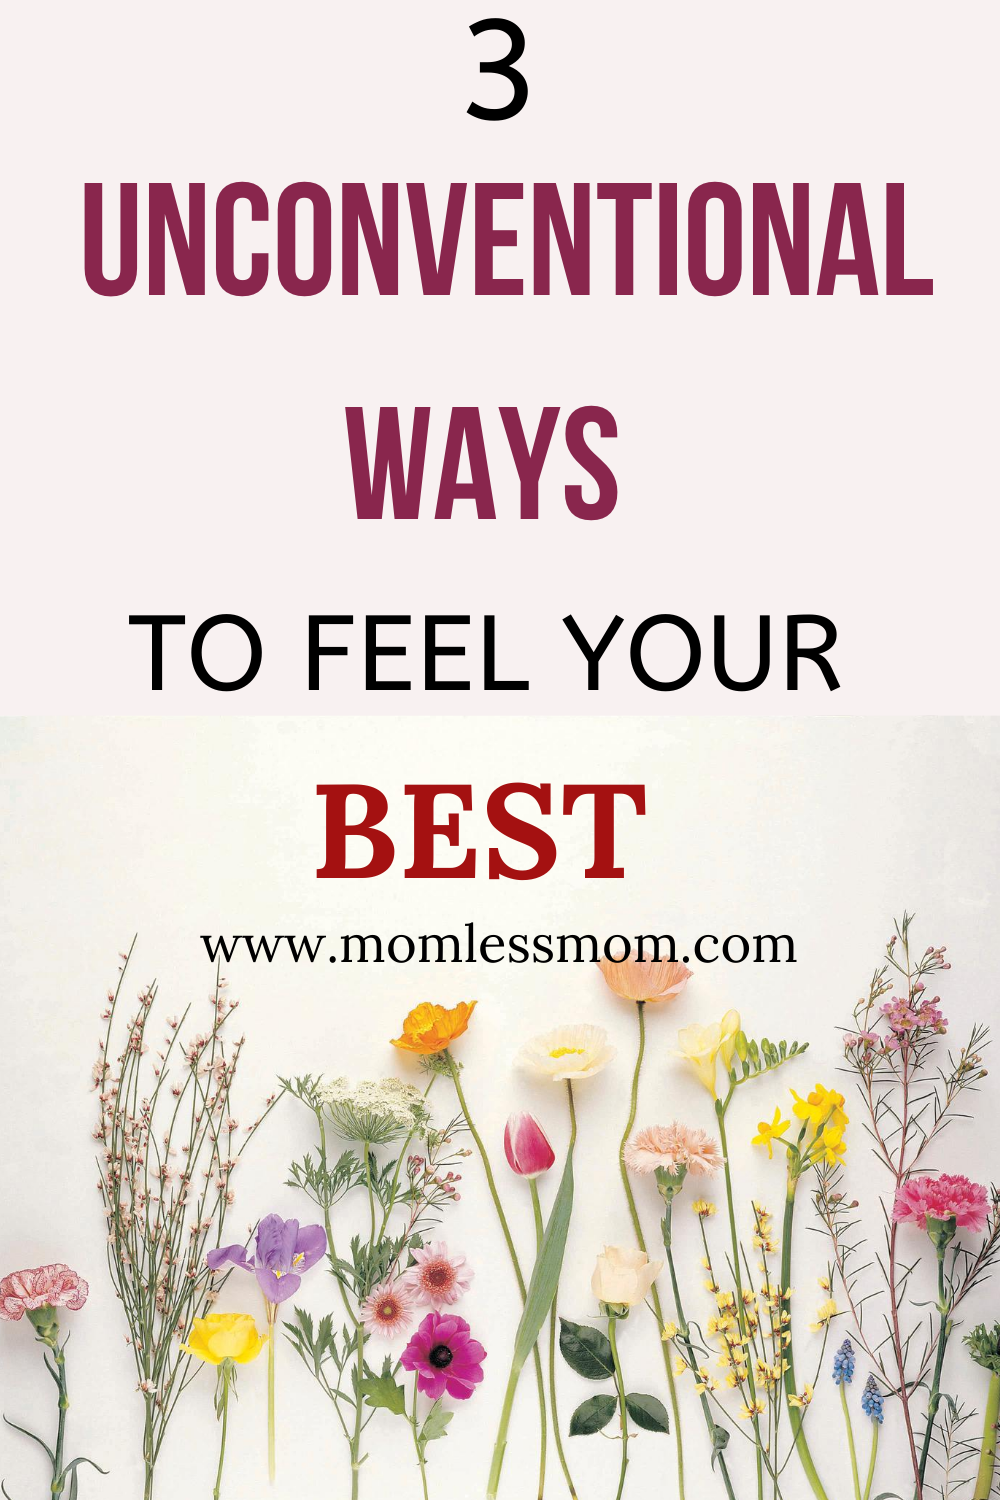 3 tips to feel your best